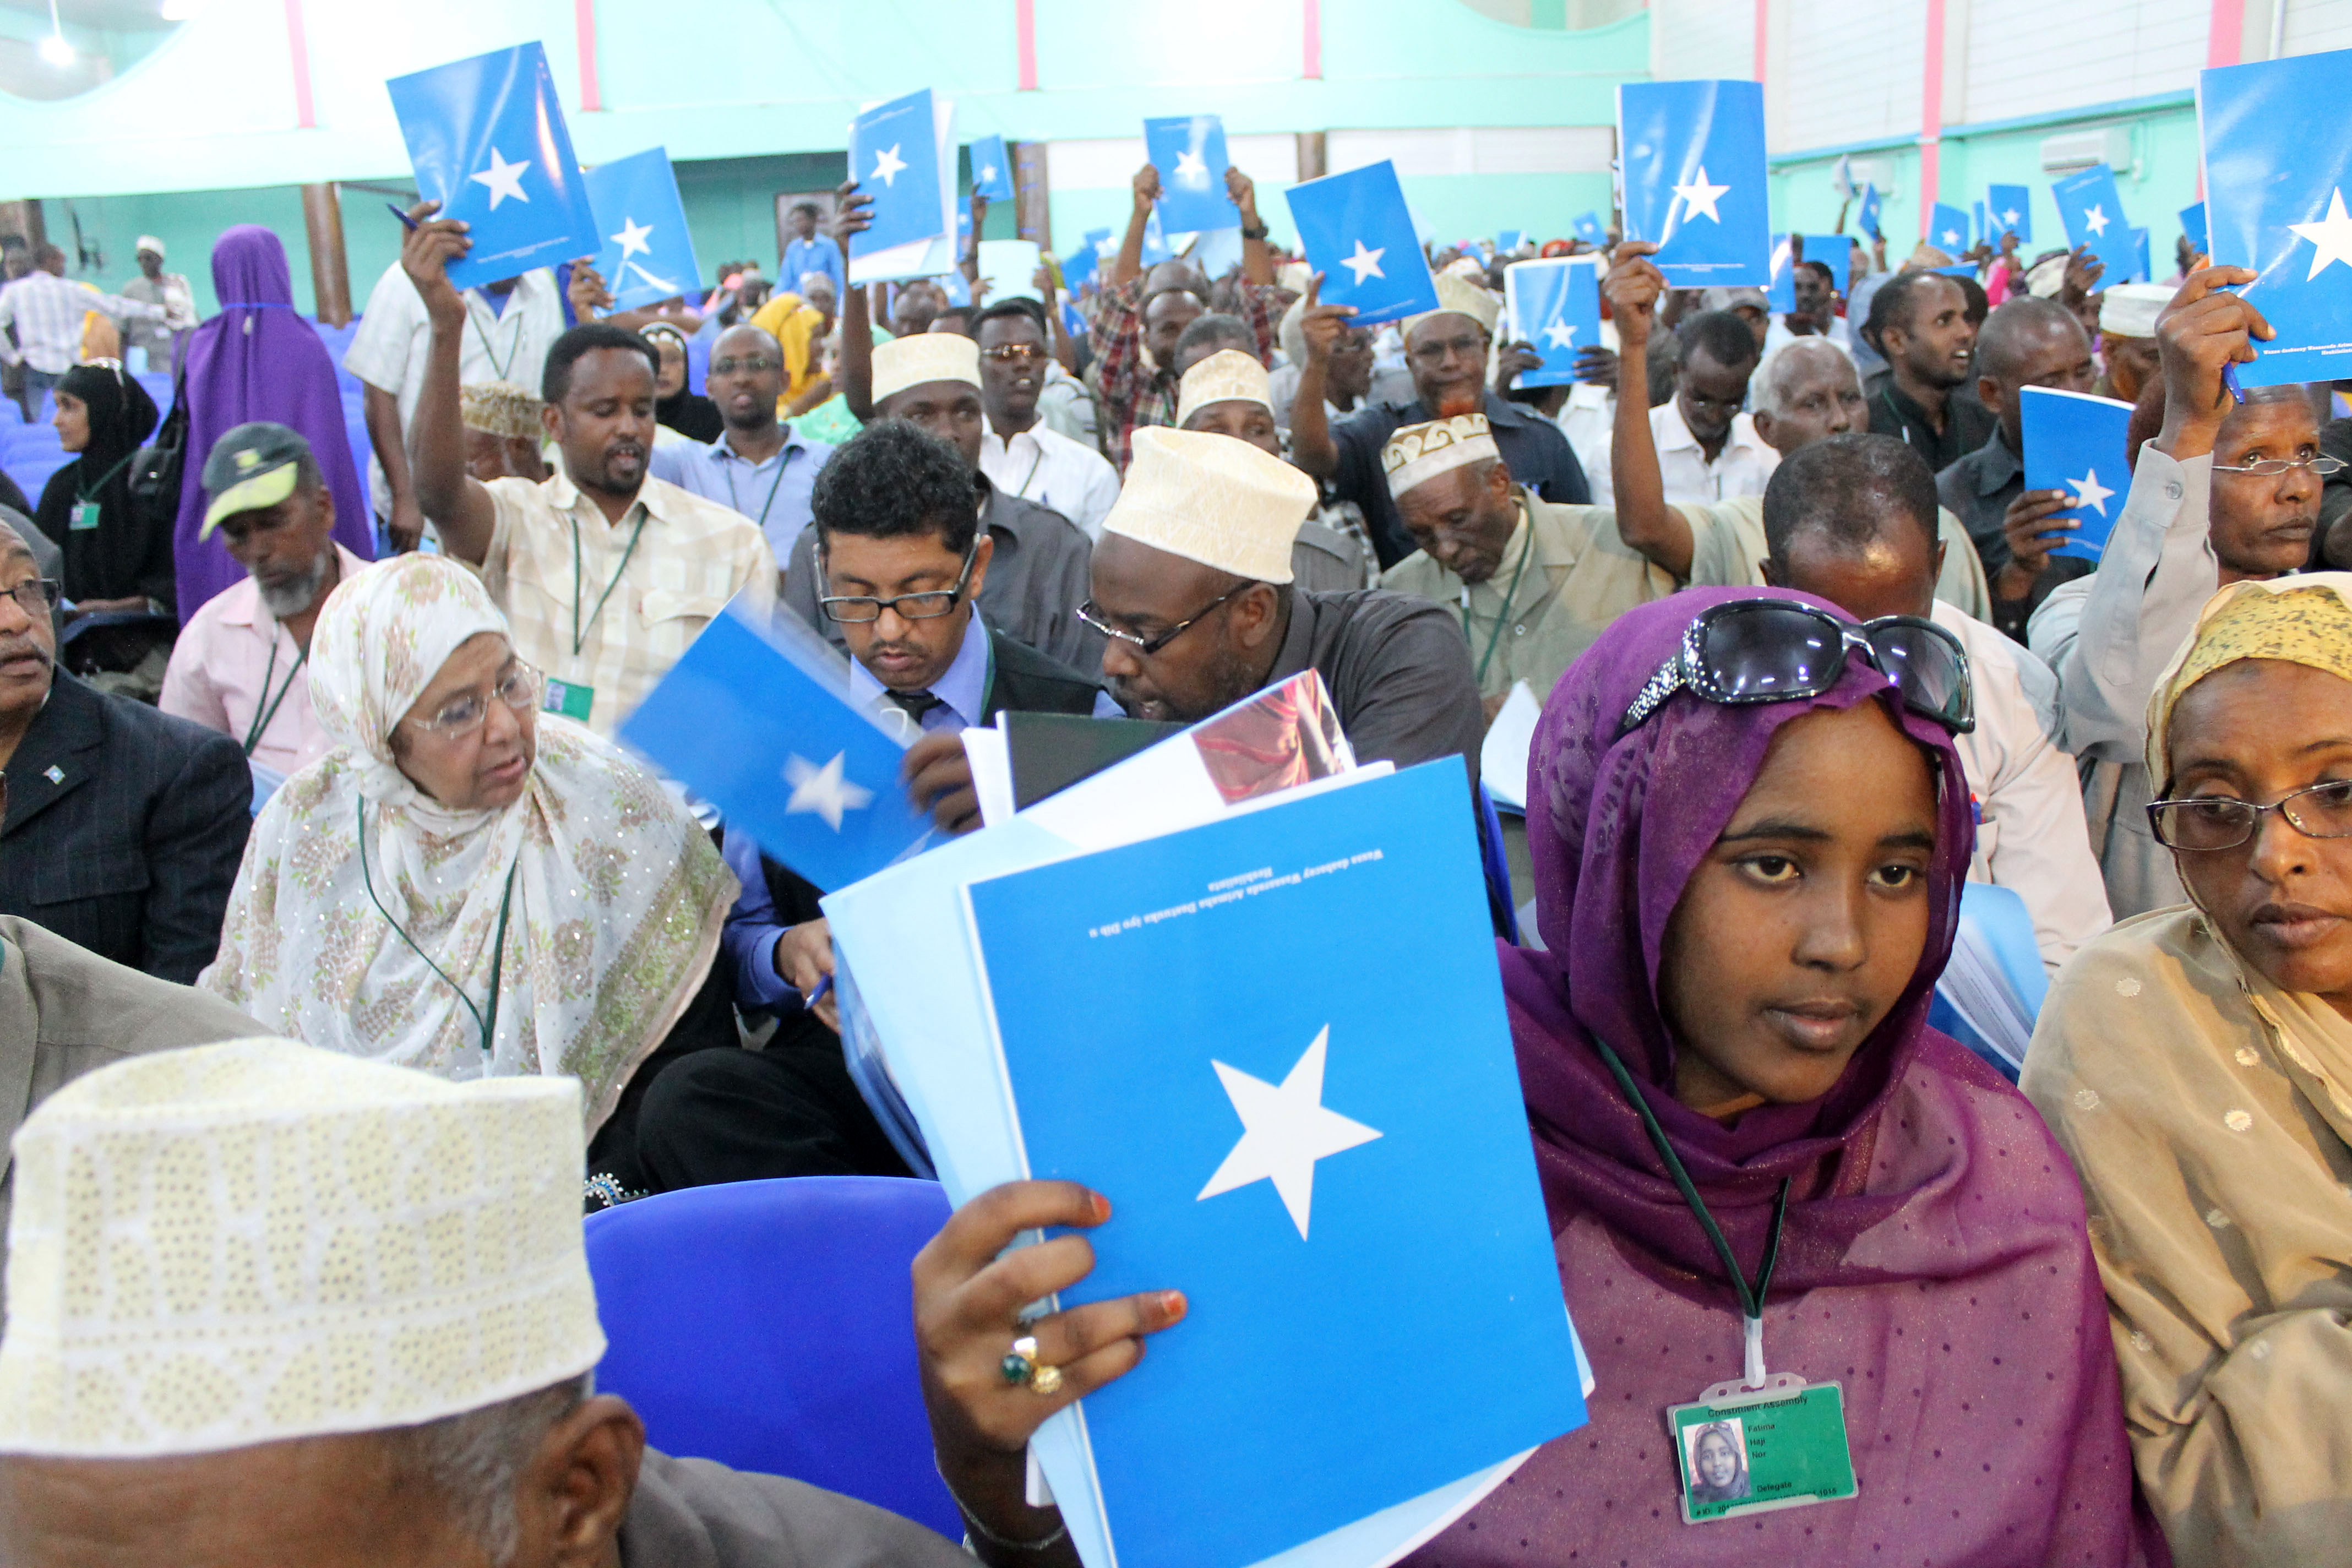 Somali delegates hold up the book of the